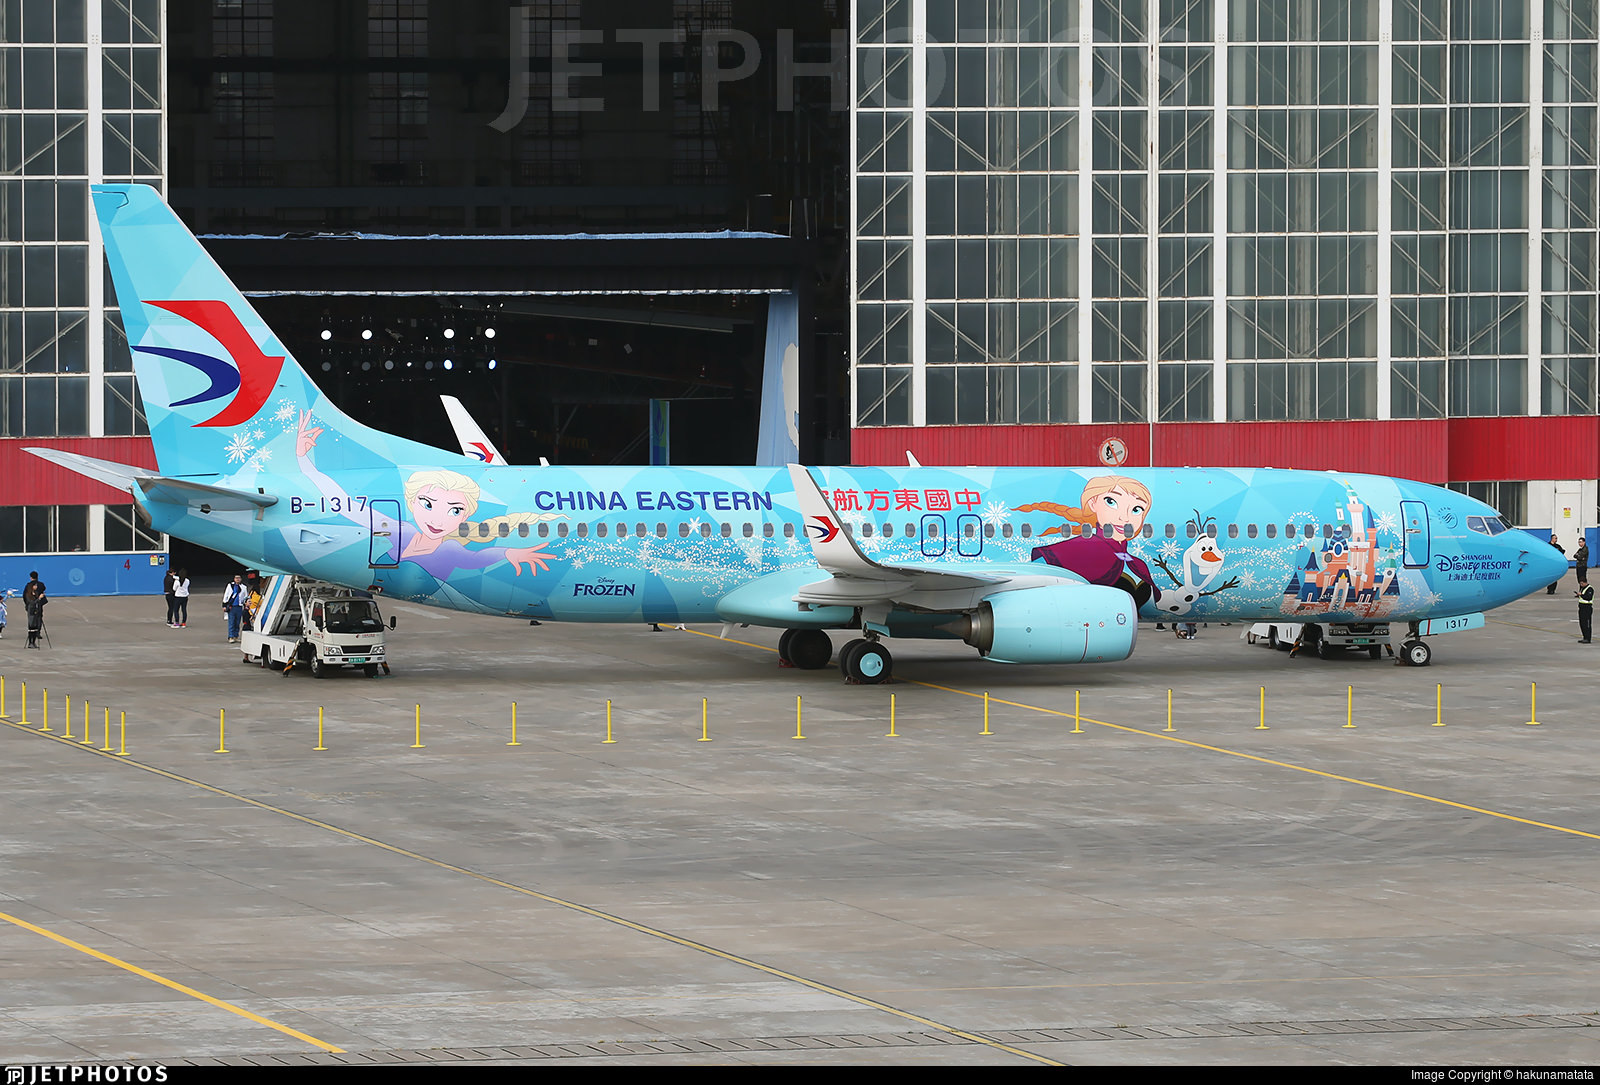 China Eastern's new Frozen themed livery